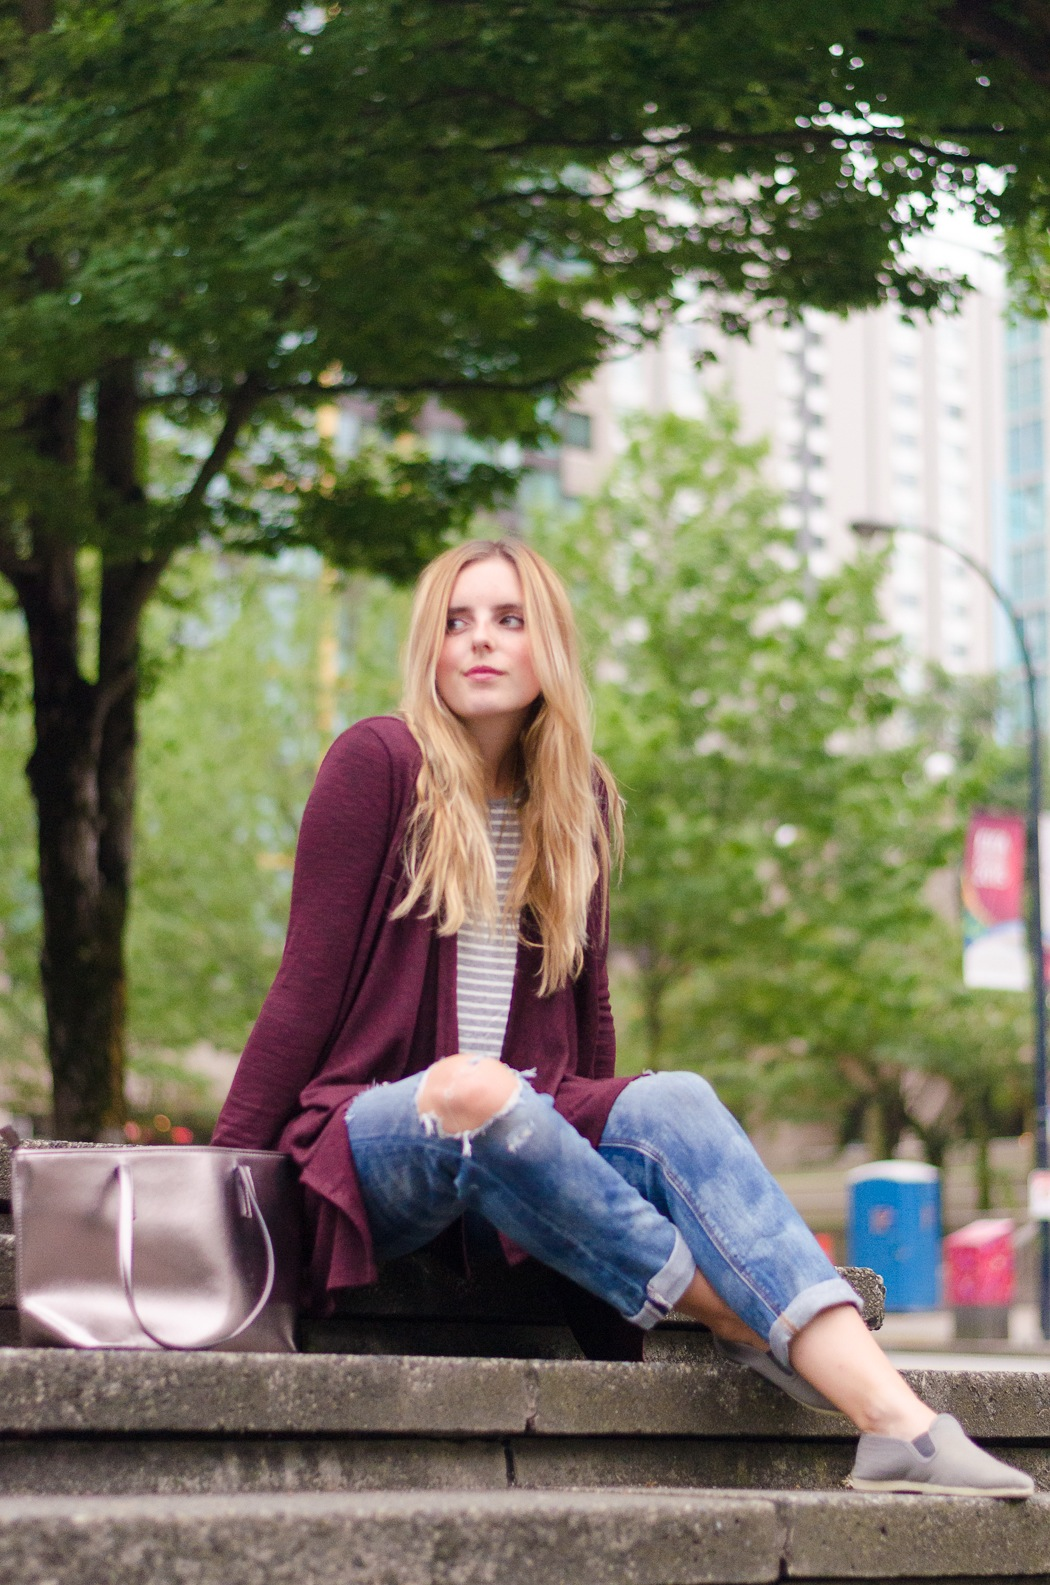 the urban umbrella style blog, vancouver style blog, vancouver fashion blog, vancouver lifestyle blog, vancouver health blog, vancouver fitness blog, vancouver travel blog, canadian faashion blog, canadian style blog, canadian lifestyle blog, canadian health blog, canadian fitness blog, canadian travel blog, bree aylwin, american eagle tom girl jeans, how to style boyfriend jeans, american eagle soft and sexy tank top, how to style stripes, round engagement ring, vancouver engagement, vancouver wedding, best lifestyle blogs, best fitness blogs, best health blogs, best travel blogs, top fashion blogs, top style blogs, top lifestyle blogs, top fitness blogs, top health blogs, top travel blogs